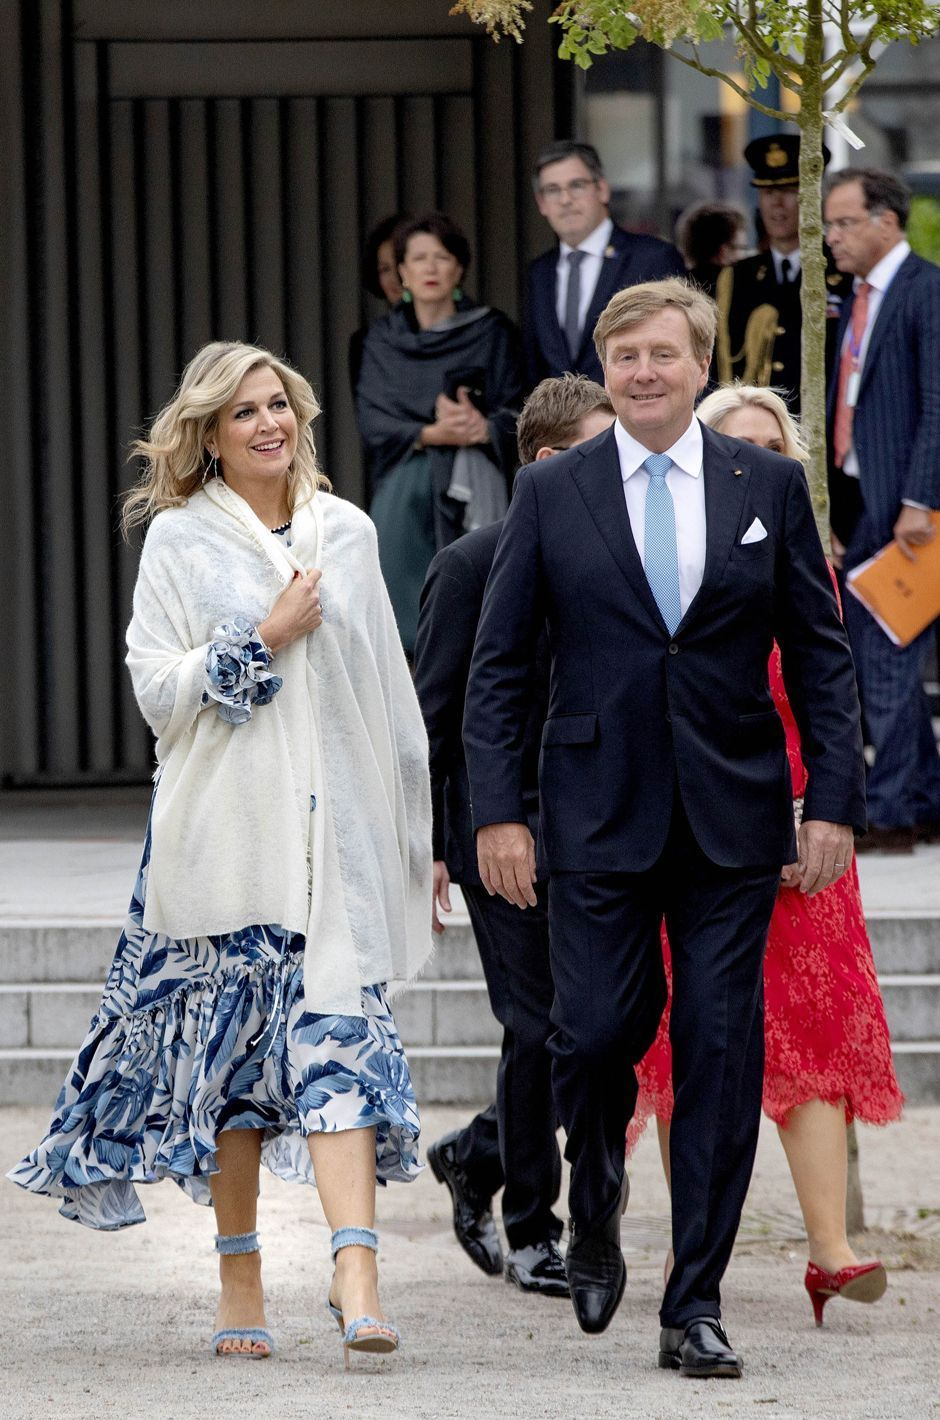 The King And Queen Of The Netherlands Attend Diner In Warnemunde